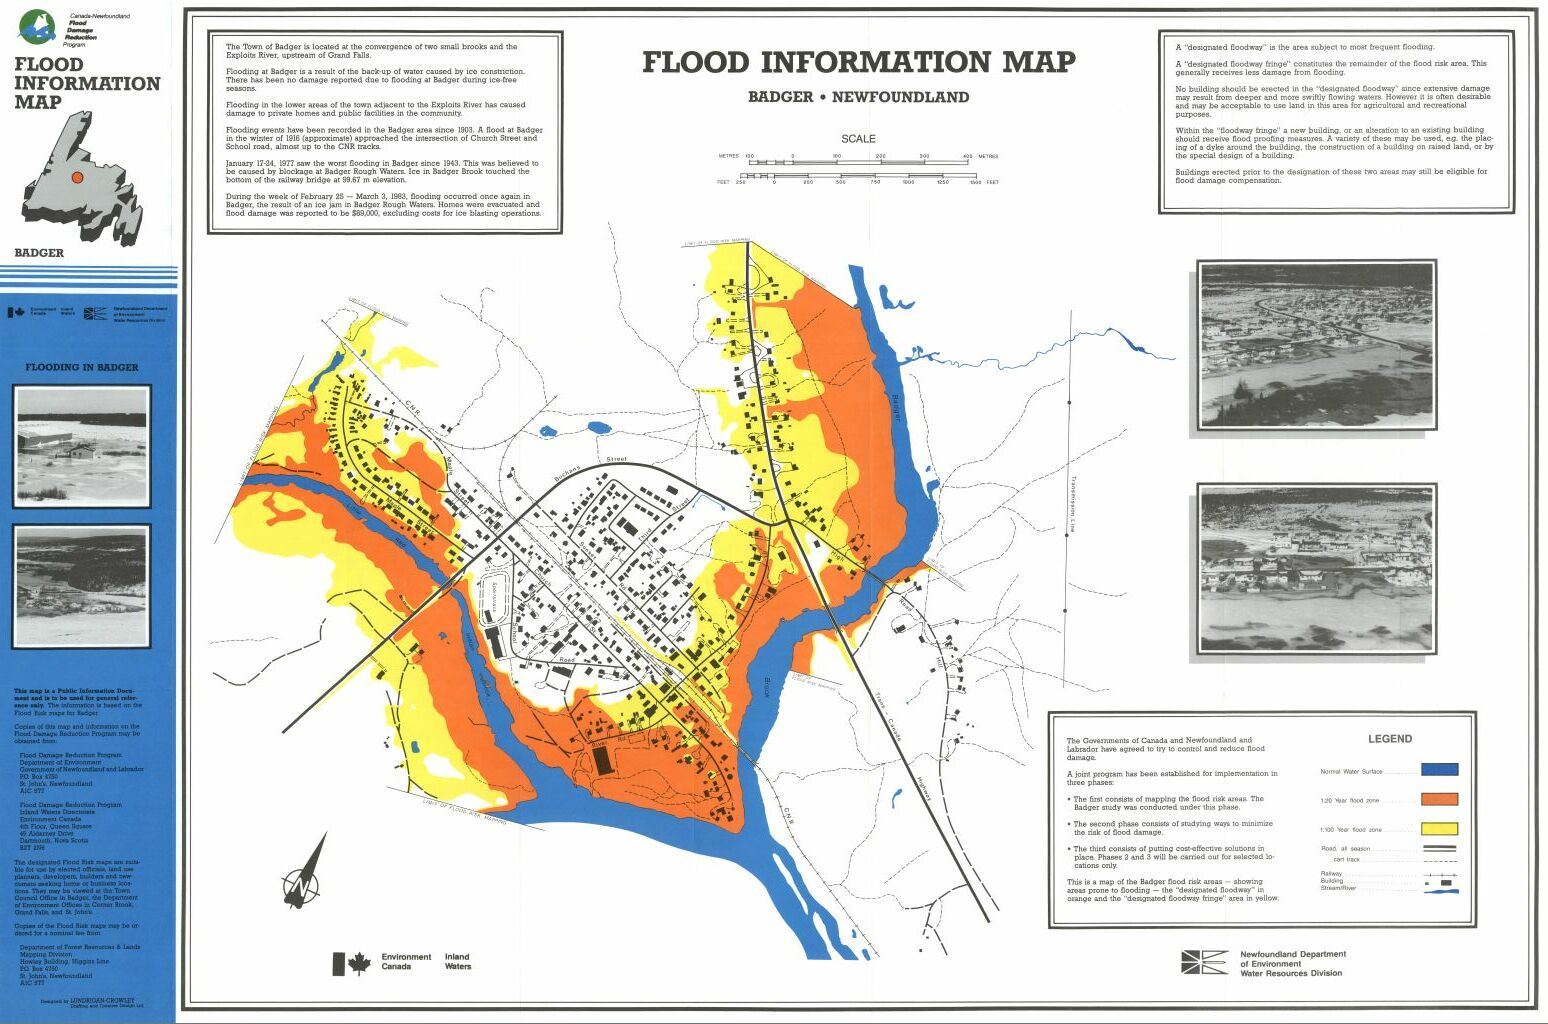 Flood Risk Mapping Stus / Public Information Maps ... on sialkot map, noaa weather map, county plat map, madison county floodplain map, kalamazoo michigan map, bangladesh climate map, contour lines on a map, global warming map, christian county missouri map, scott county il map, floodplain elevation map, bayonne crime map, bangladesh river map, switzerland climate map, area code map, texas floodplain map, annual precipitation map, climate change map, snow interactive map, data visualization map,